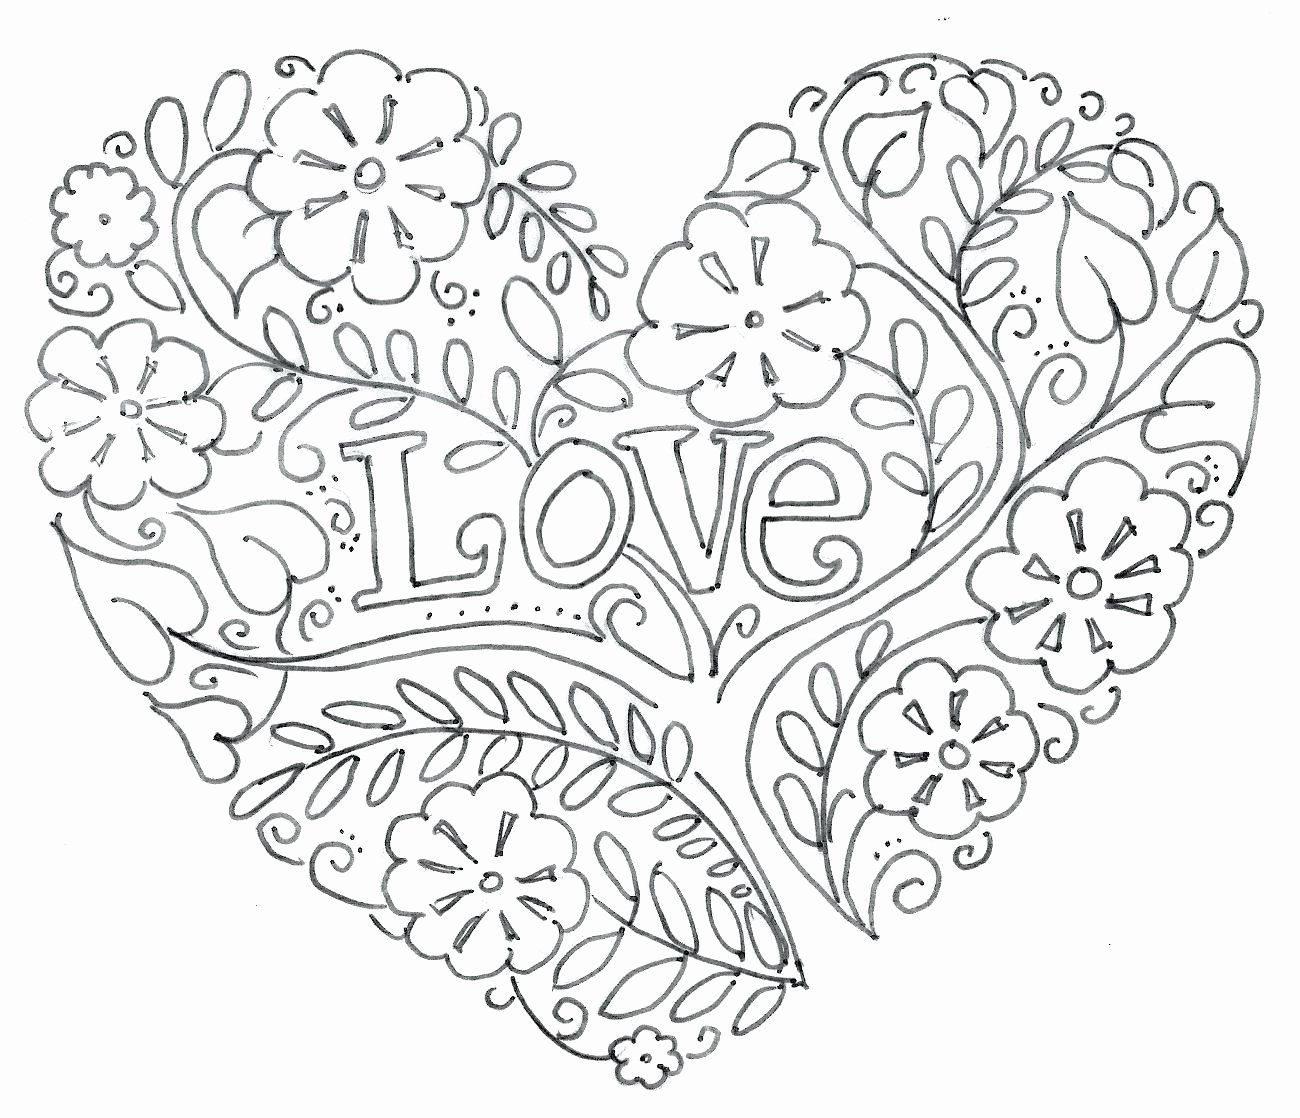 Heart Coloring Pages – coloring.rocks! | 1118x1300